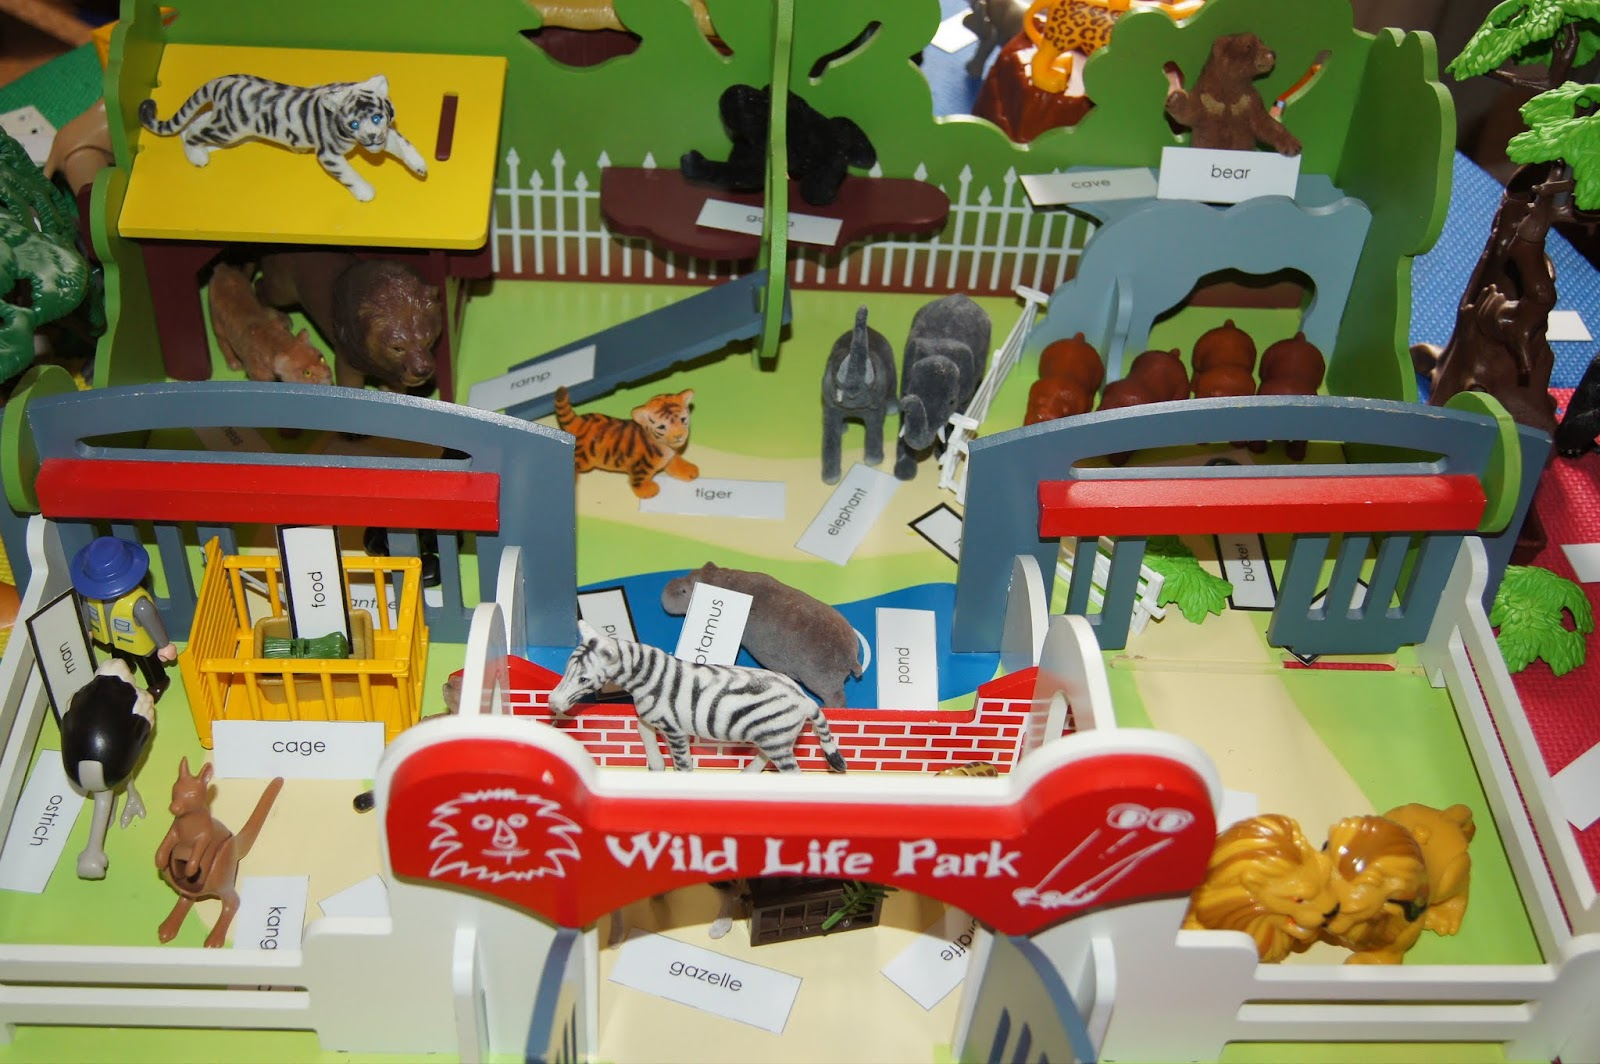 Miniature Zoo Environment for Reading and Grammar (Photo from Making Montessori Ours)